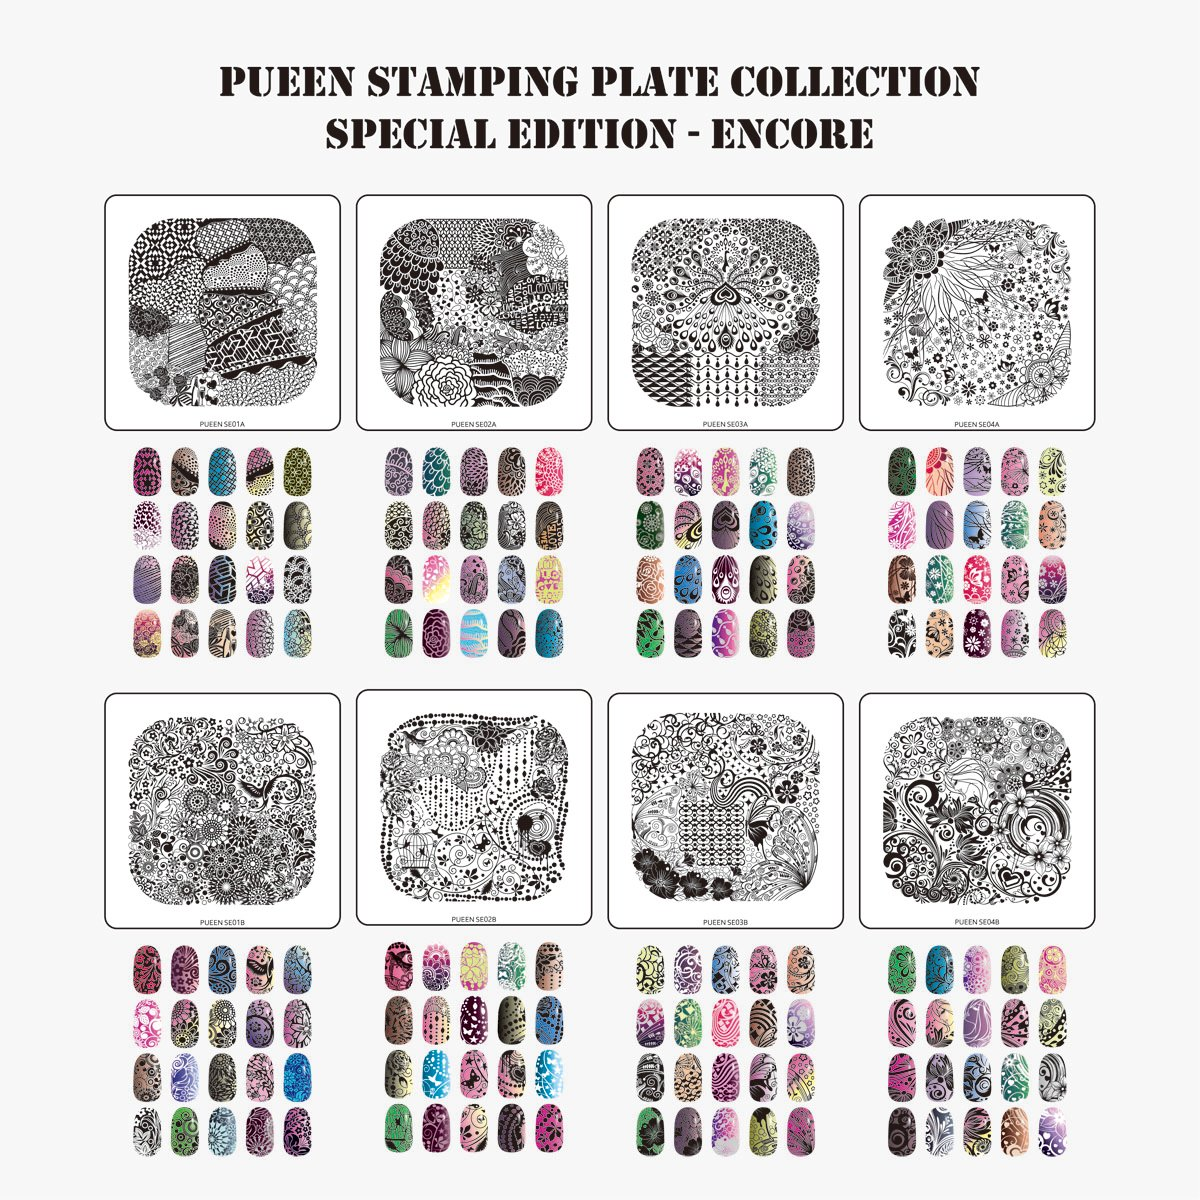 Amazon.com : Pueen Nail Art Stamp Collection - Special Edition ...